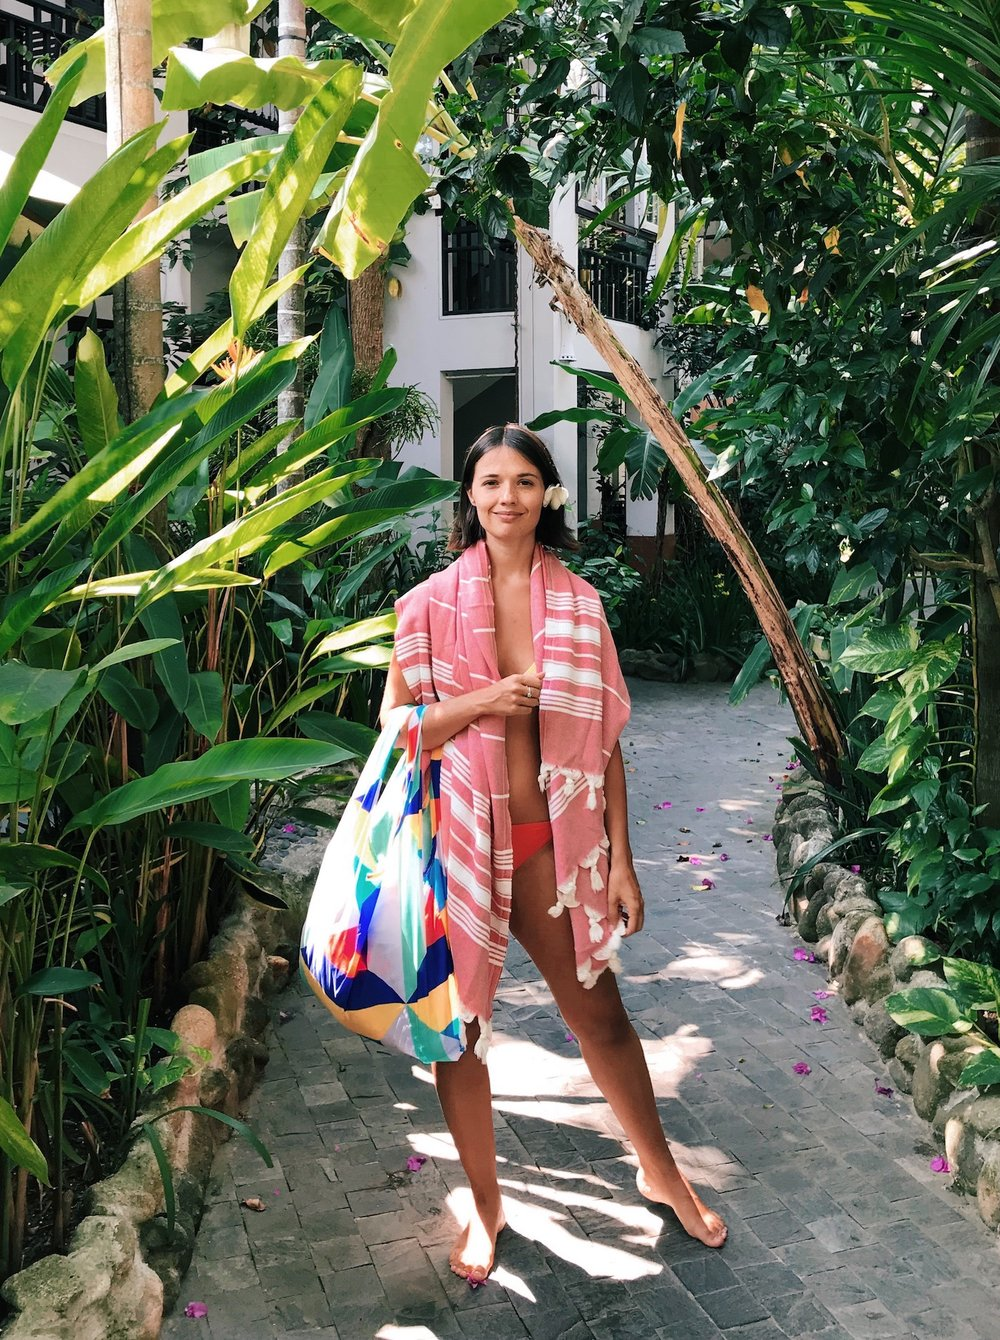 Adventure Claire Travel Essentials Packing a Year in a Carryon - Claire Eliza 13.JPG